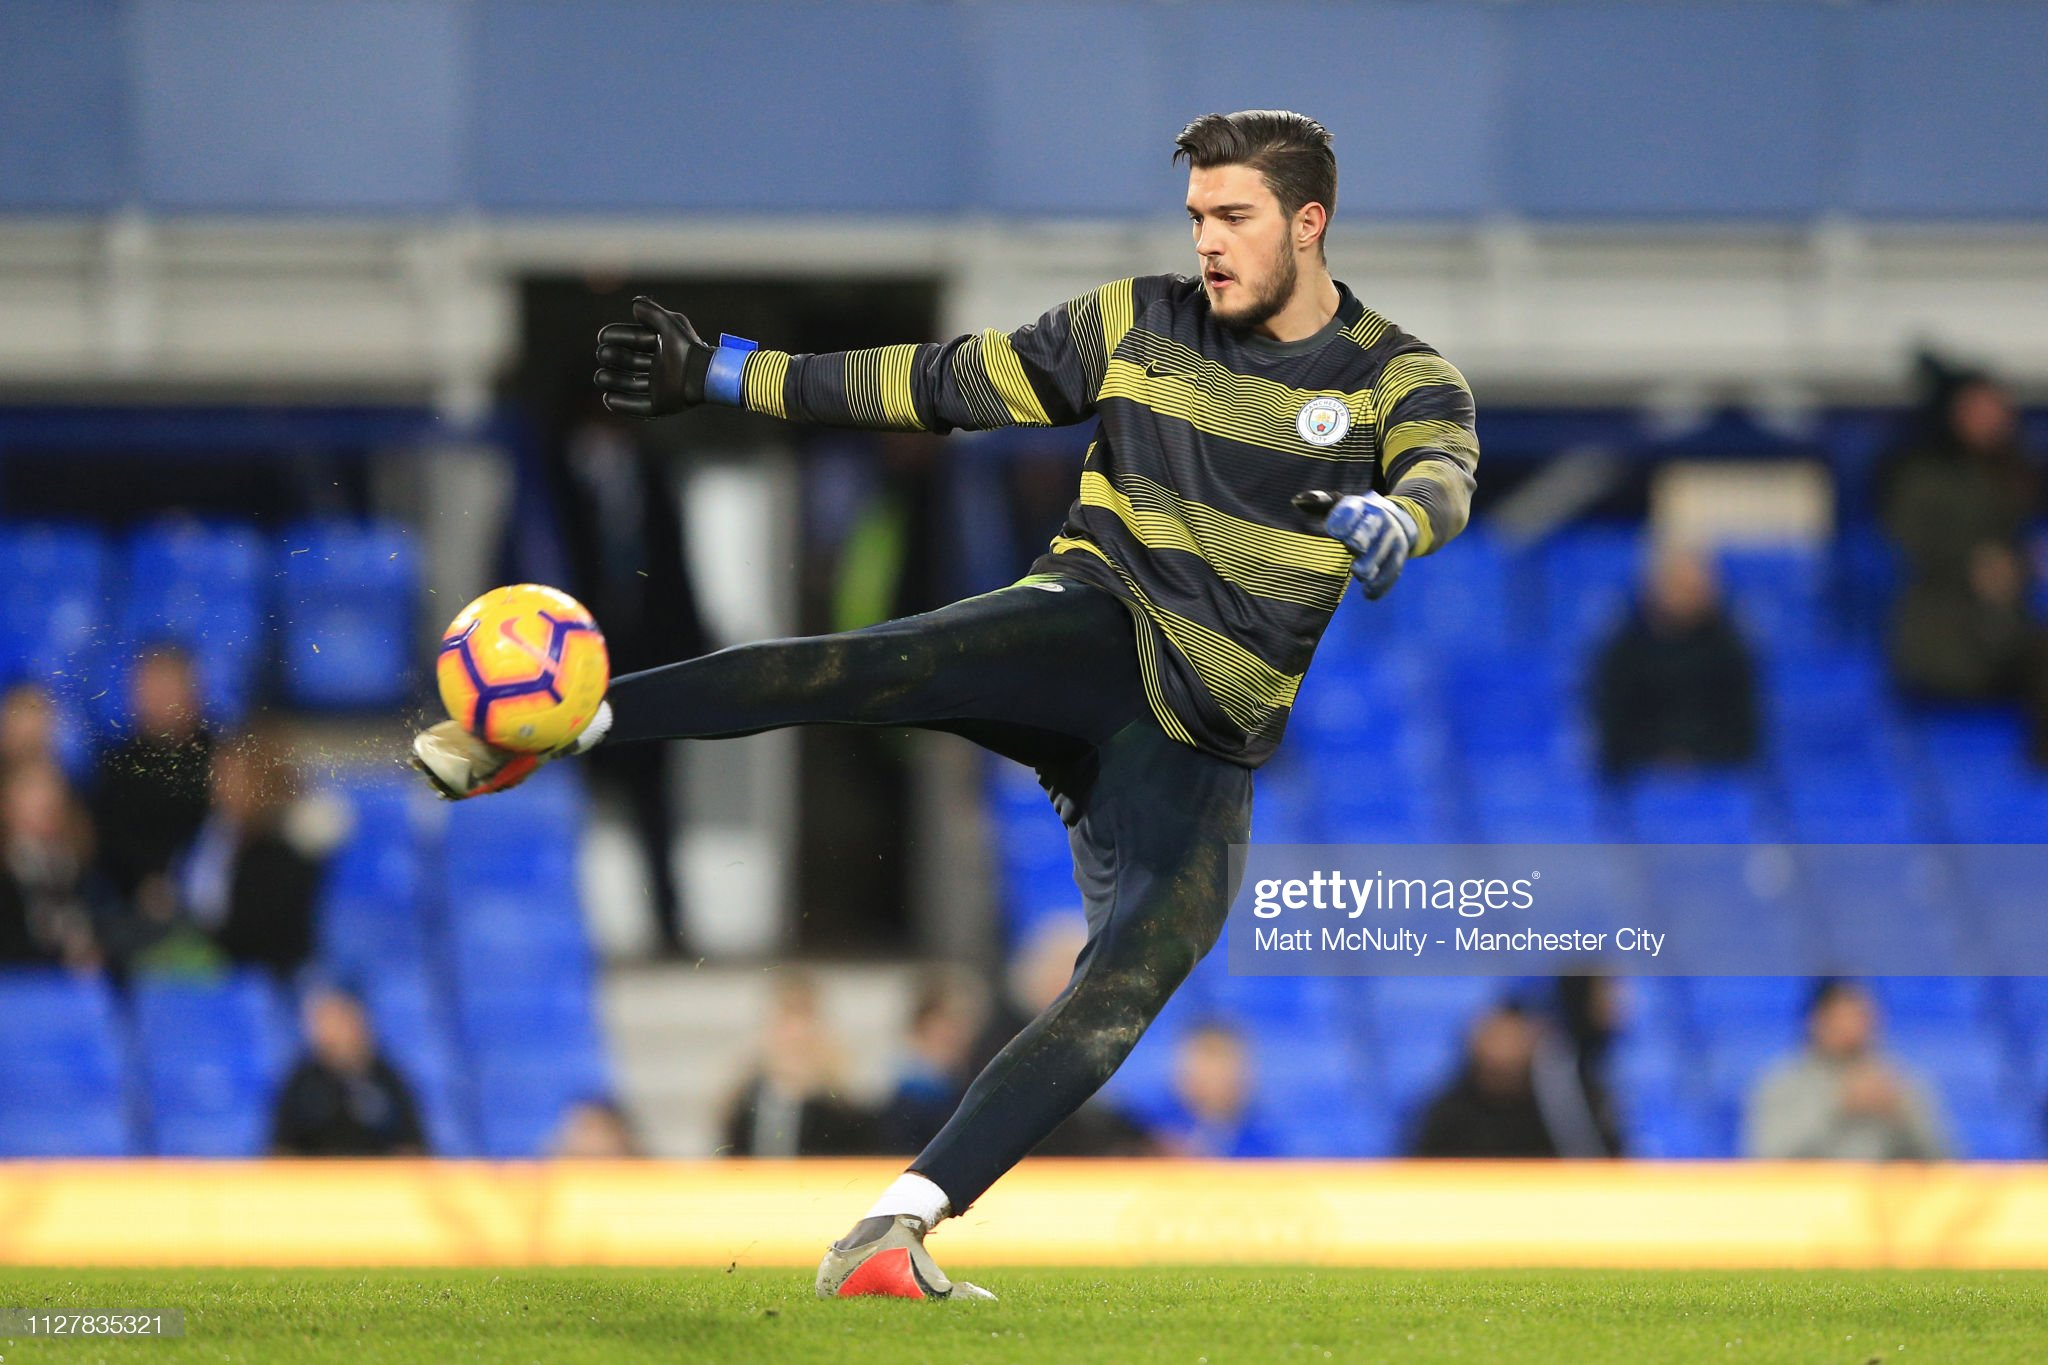 https://media.gettyimages.com/photos/arijanet-muric-of-manchester-city-warms-up-during-the-premier-league-picture-id1127835321?s=2048x2048